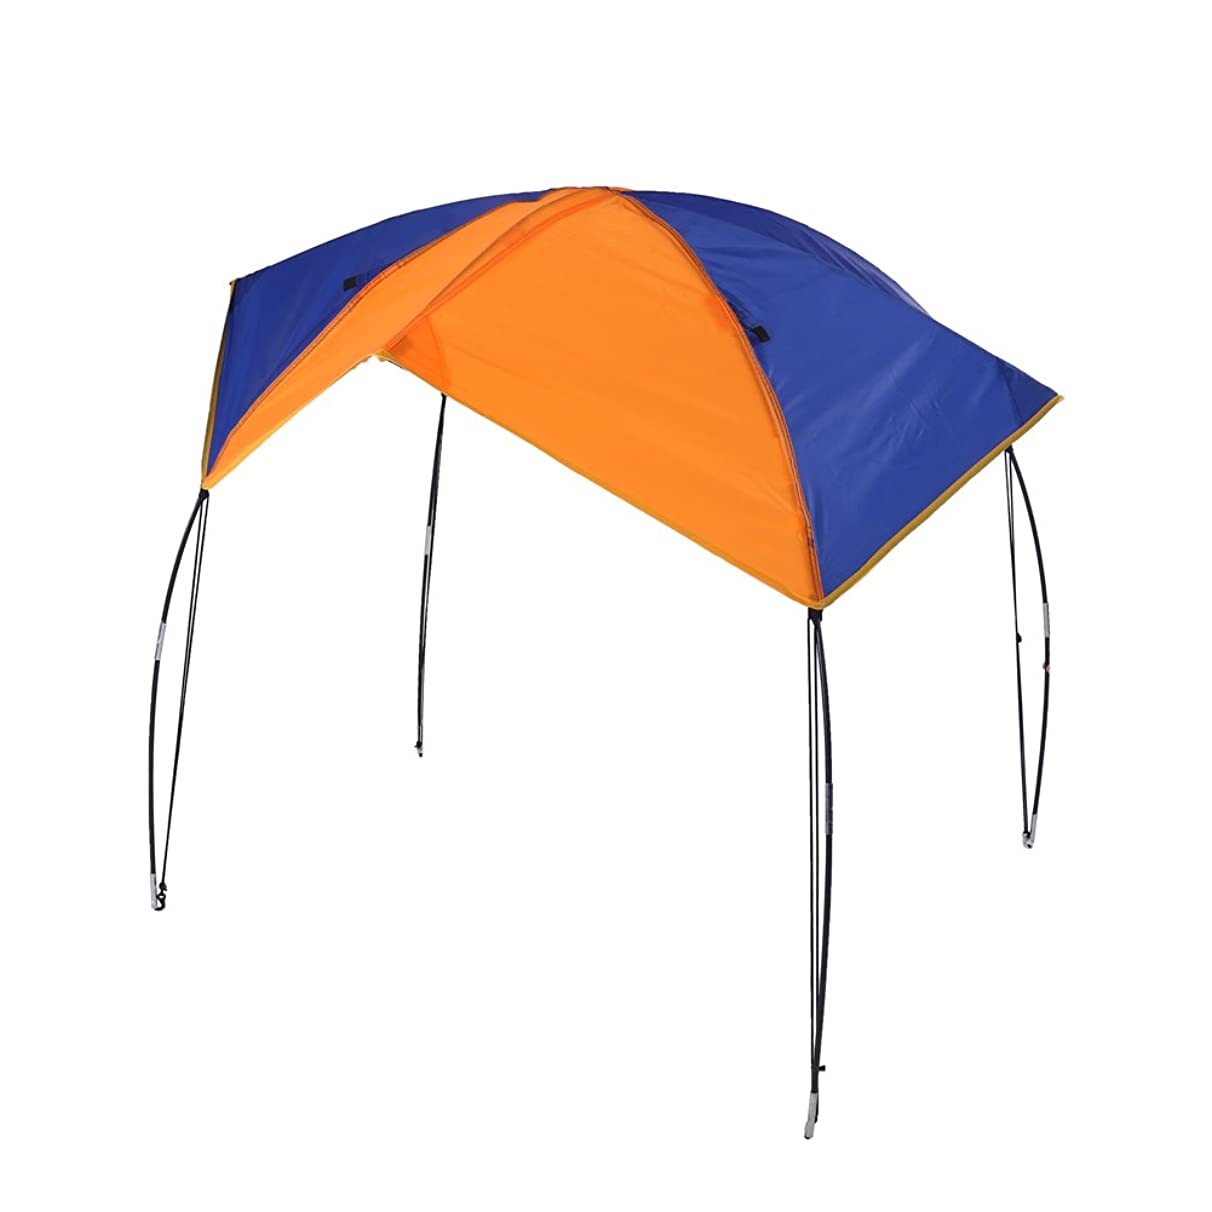 Boat Sun Shade Shelter, 2-4 Persons Quality Lightweight Folding Inflatables Boat Awning Top Cover Fishing Tent with D-Shape Buckles for Camping Fishing